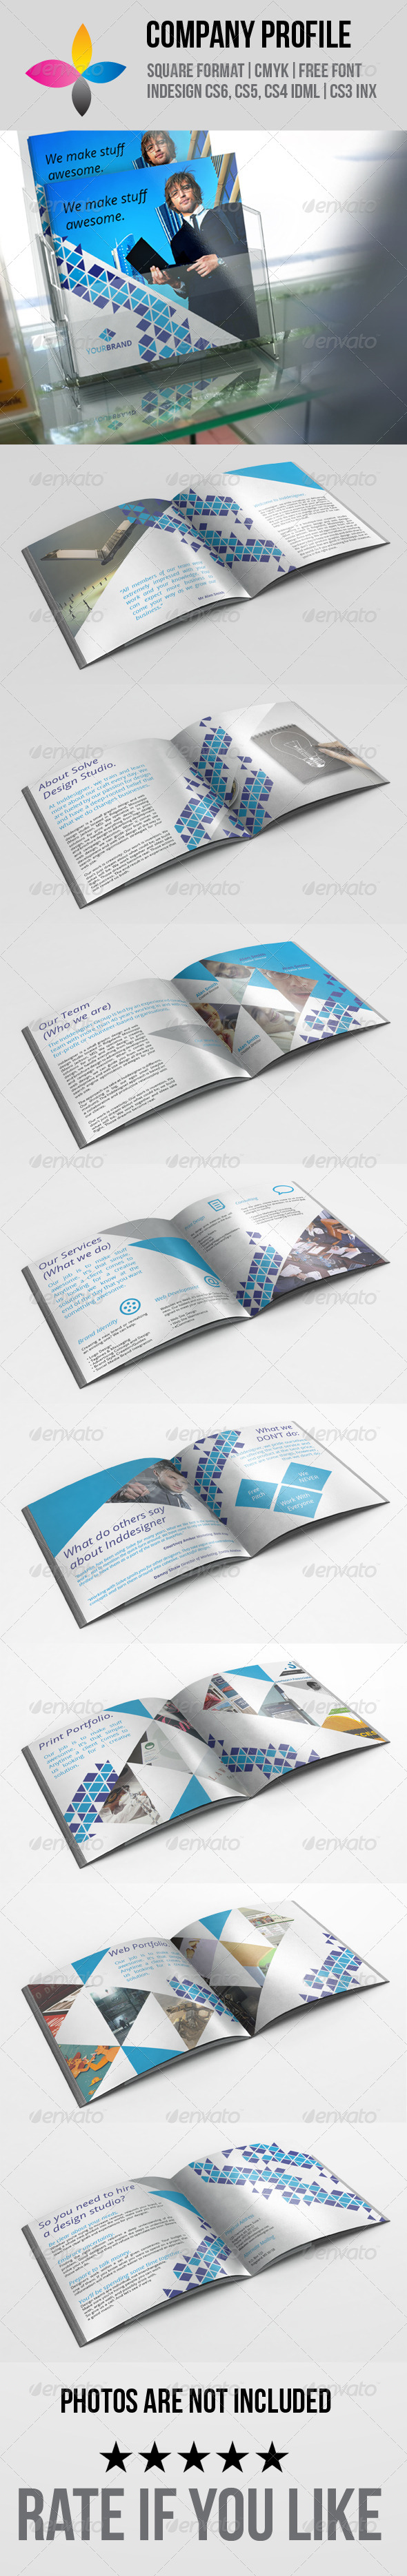 GraphicRiver Company Profile 7386810